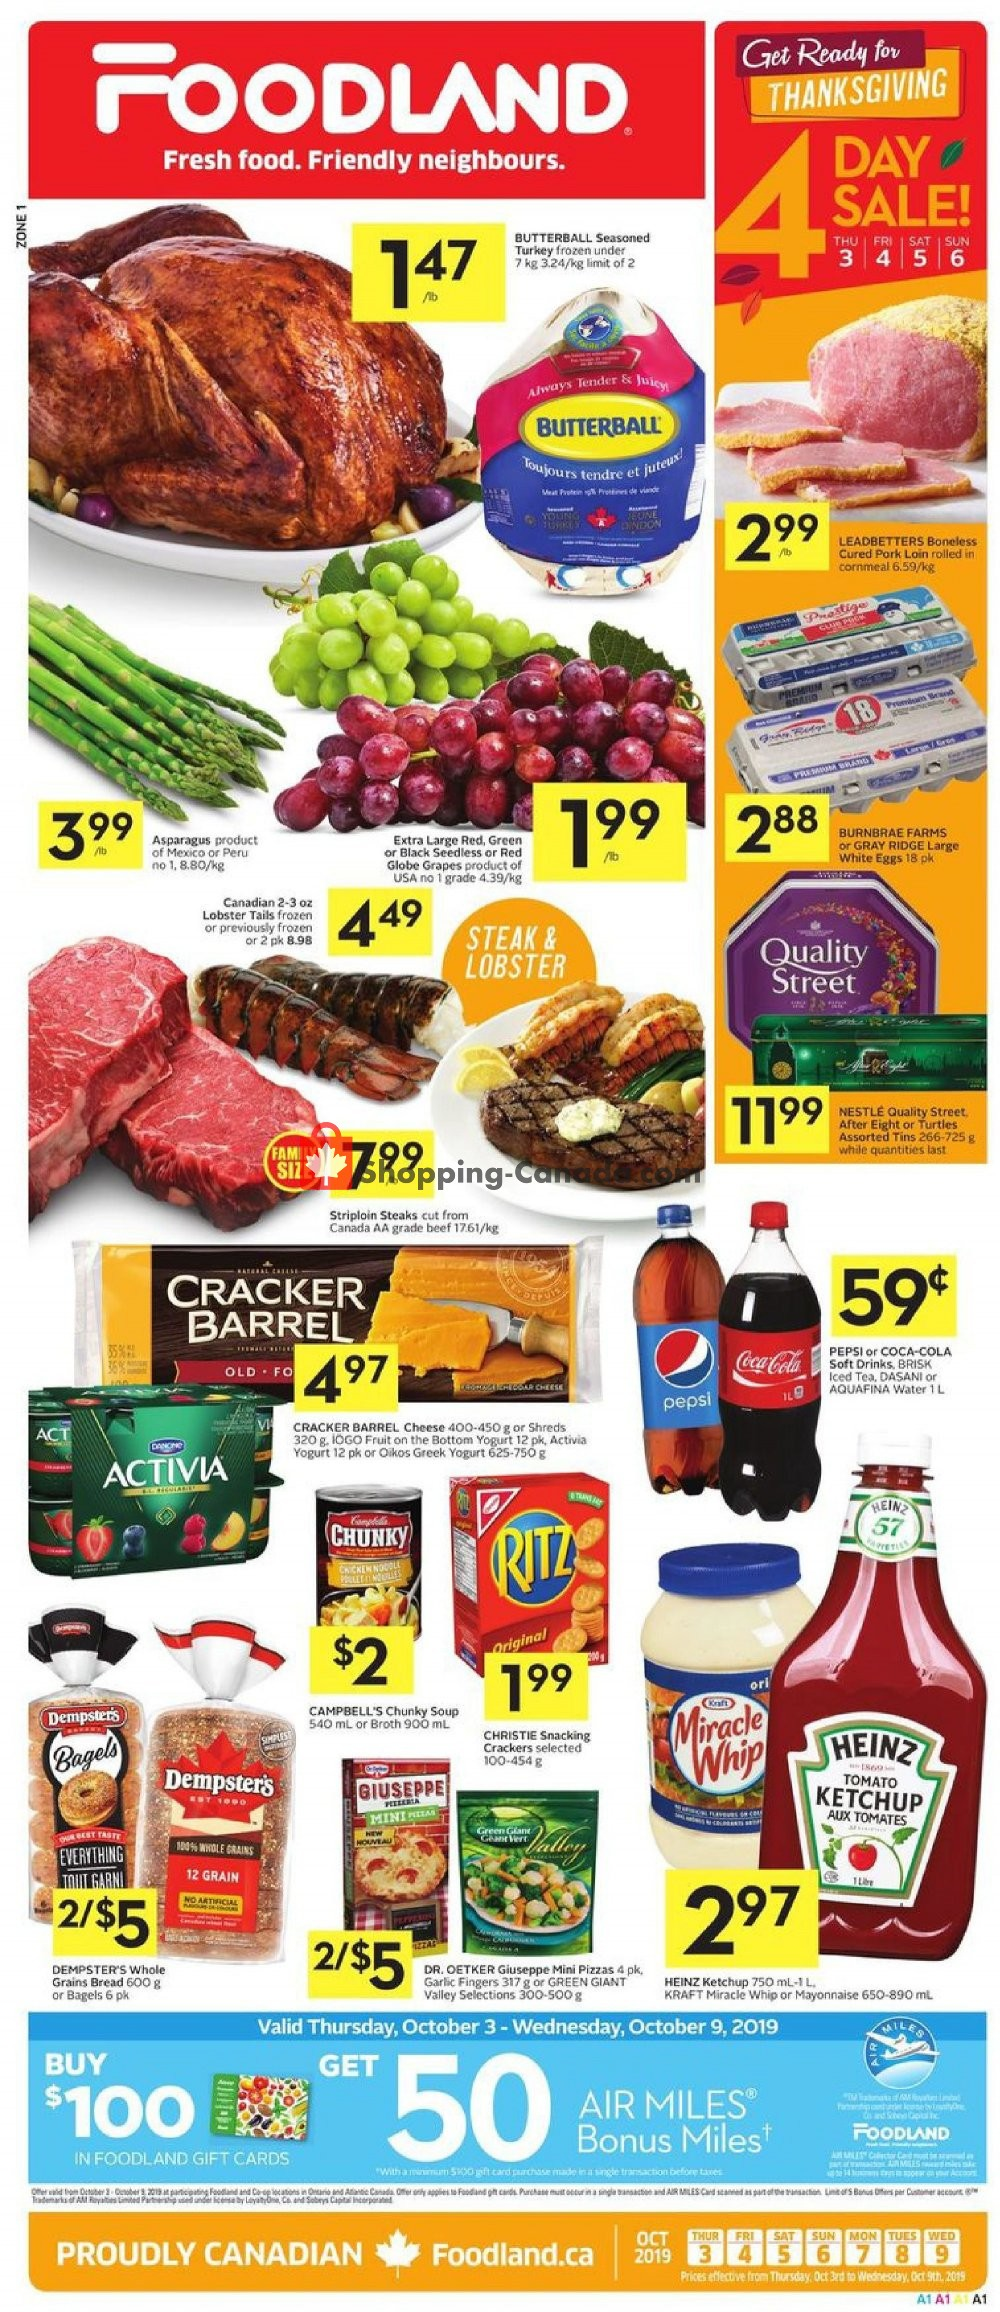 Flyer Foodland Canada - from Thursday October 3, 2019 to Wednesday October 9, 2019